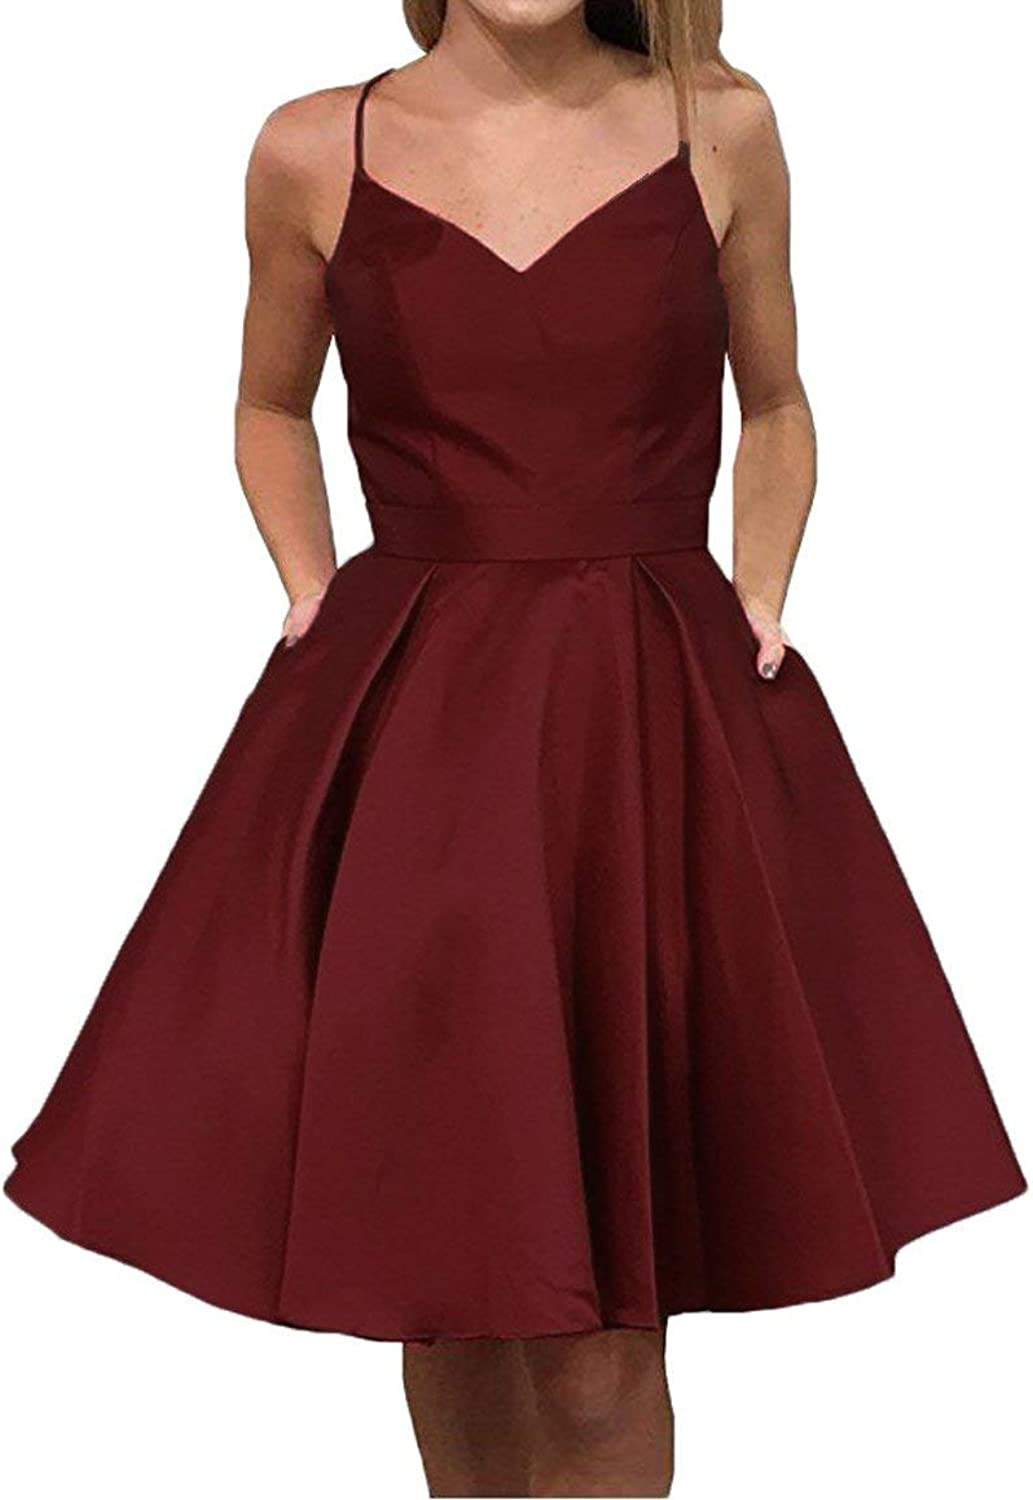 JQLD Cute Straps Knee Length Homecoming Dresses Short Sleeveless Party Cocktail Dress with Pockets